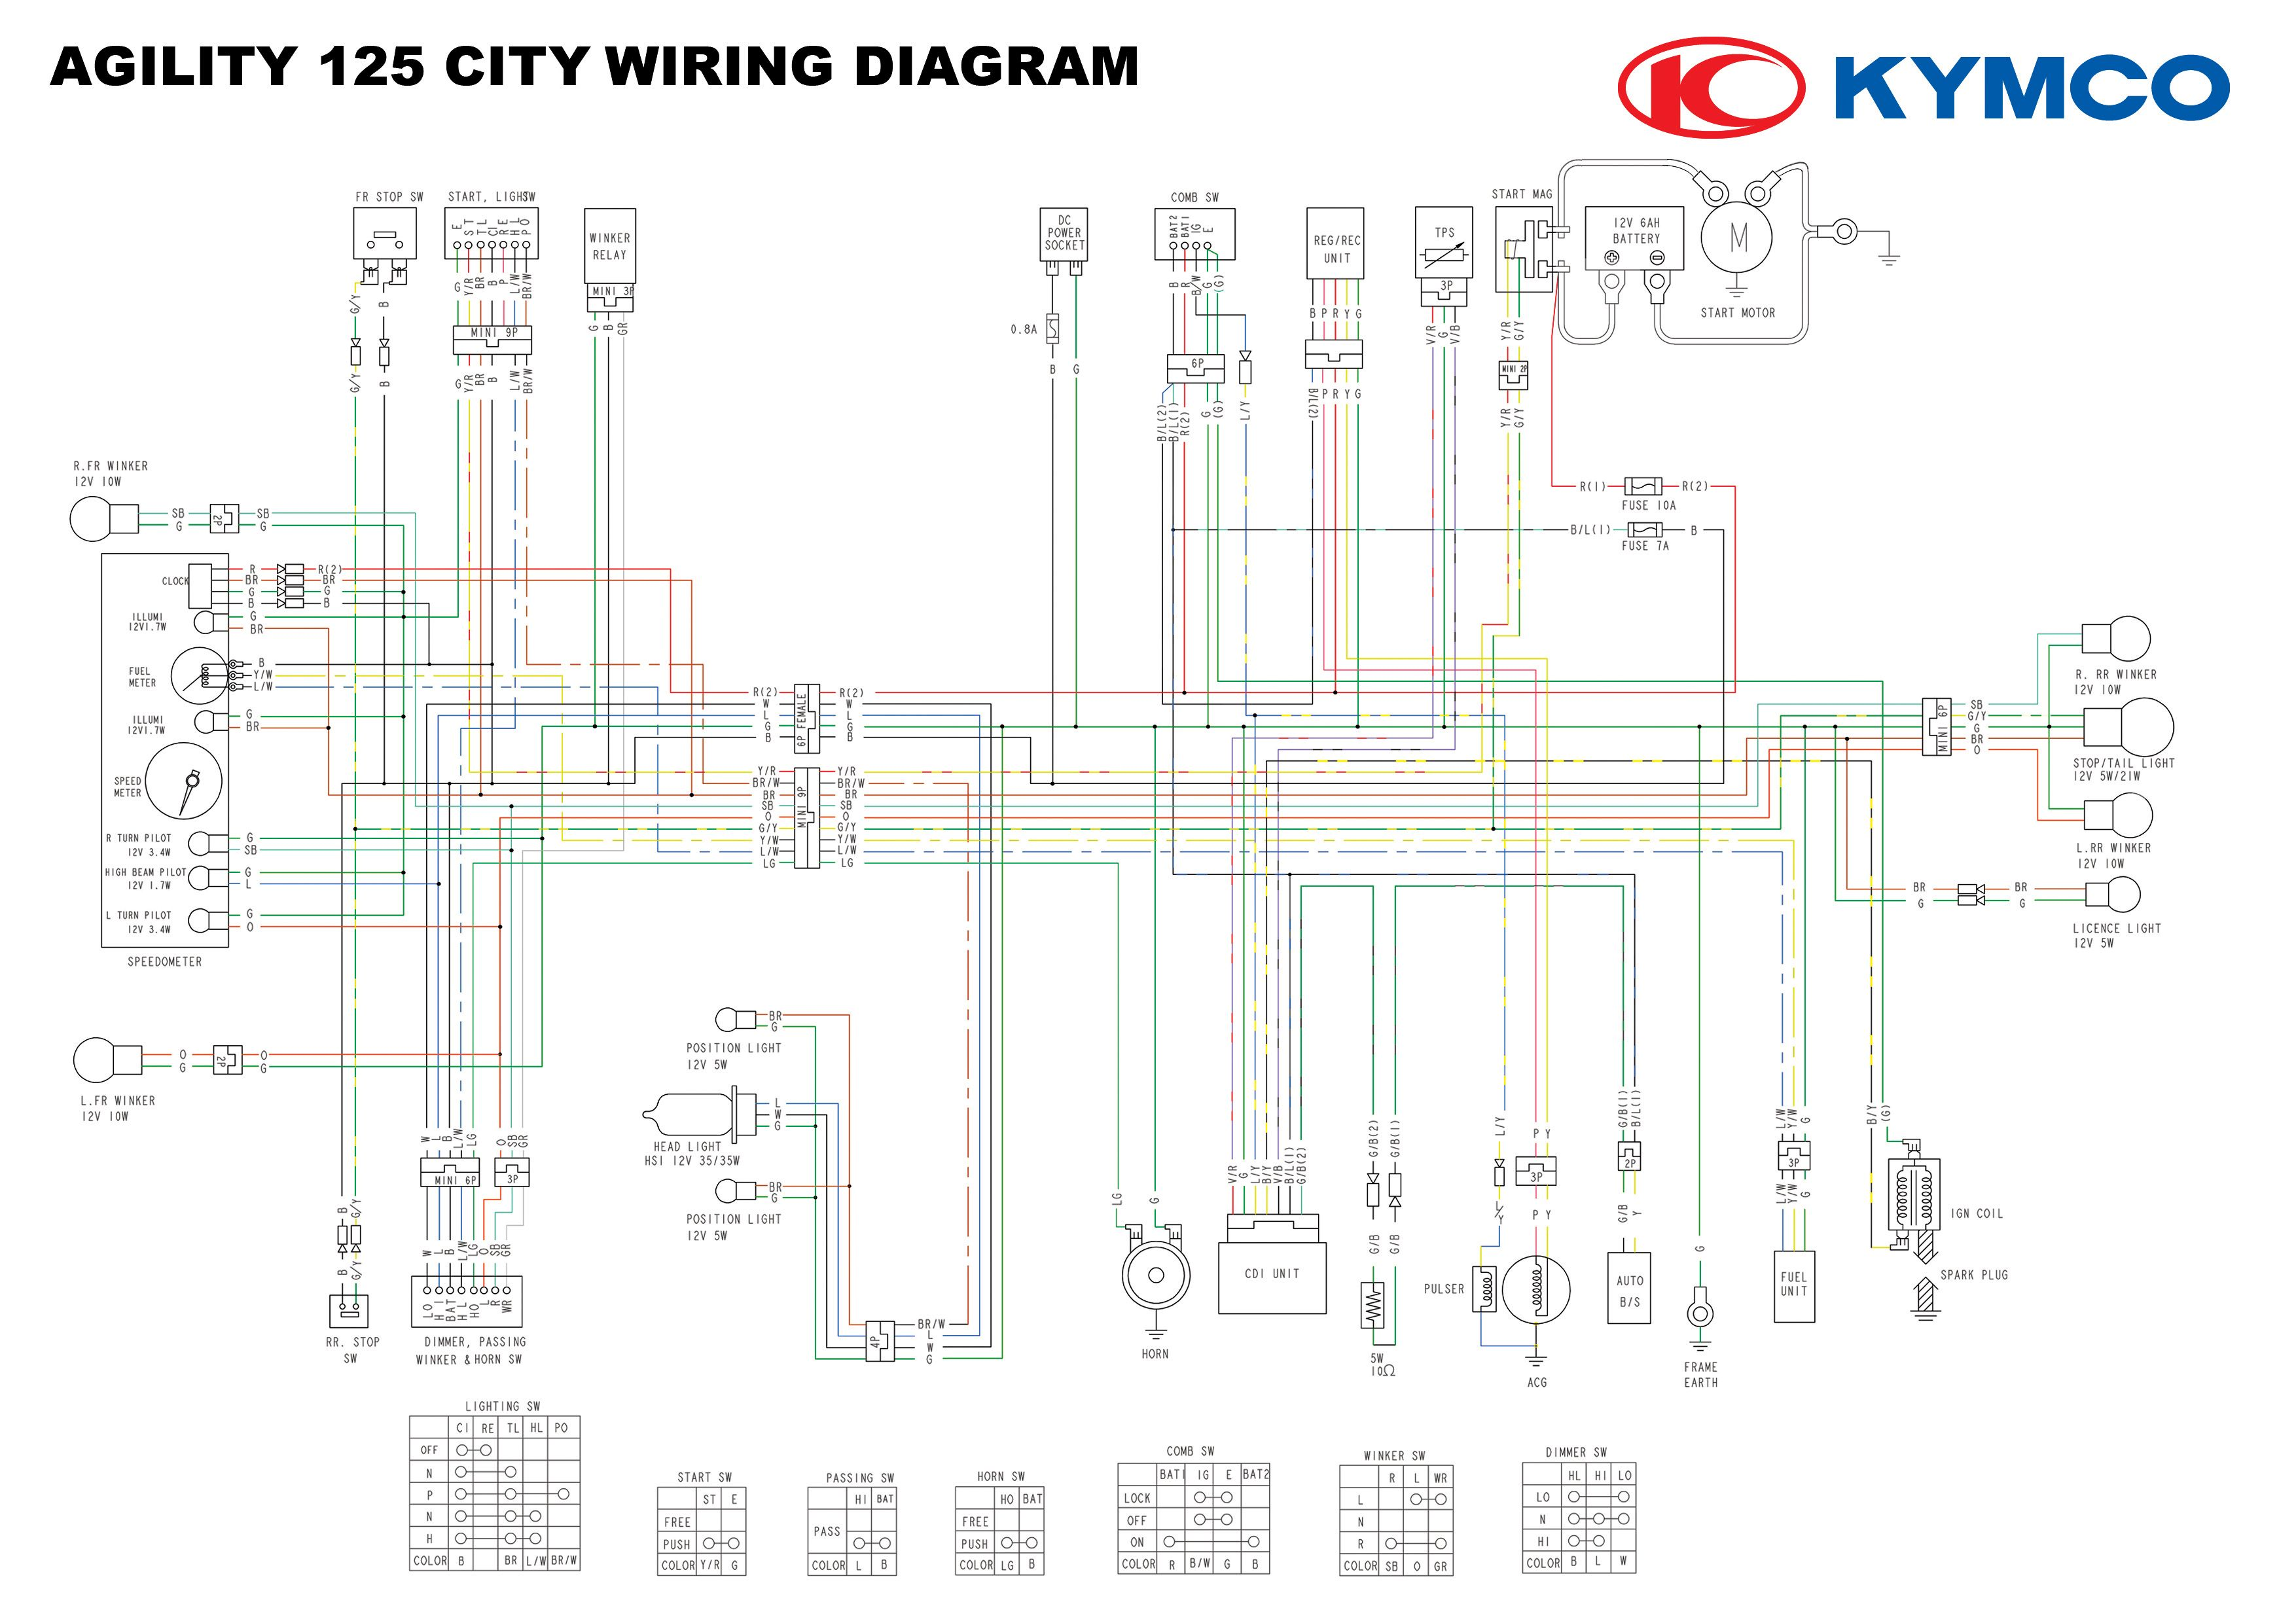 Kymco 50 Wire Diagram | Wiring Diagram on kymco mxu 375, kymco agility 50cc moped, kymco mxu 300, kymco mxu 250, kymco atv, kymco mxu 150, kymco mxu 450i, kymco mxu 500, kymco utv, kymco 90 aftermarket parts, kymco side by side parts, kymco 50cc scooter top speed, kymco uxv 500,